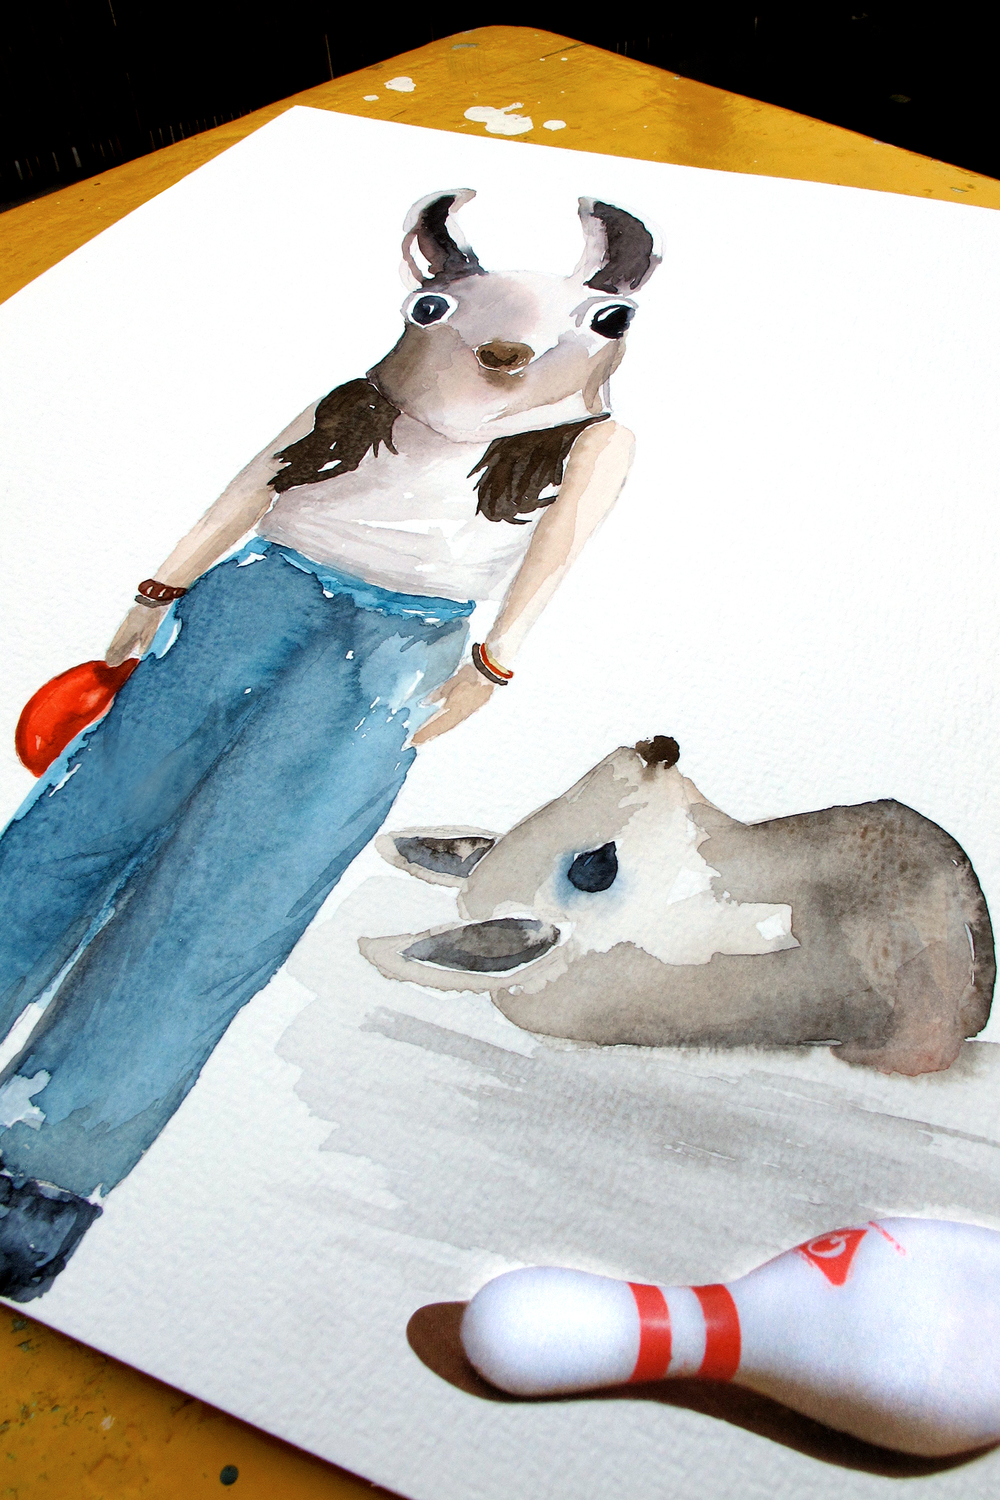 Dear deer, let's have a ball...  Aquarel by Darja ©kokonoma